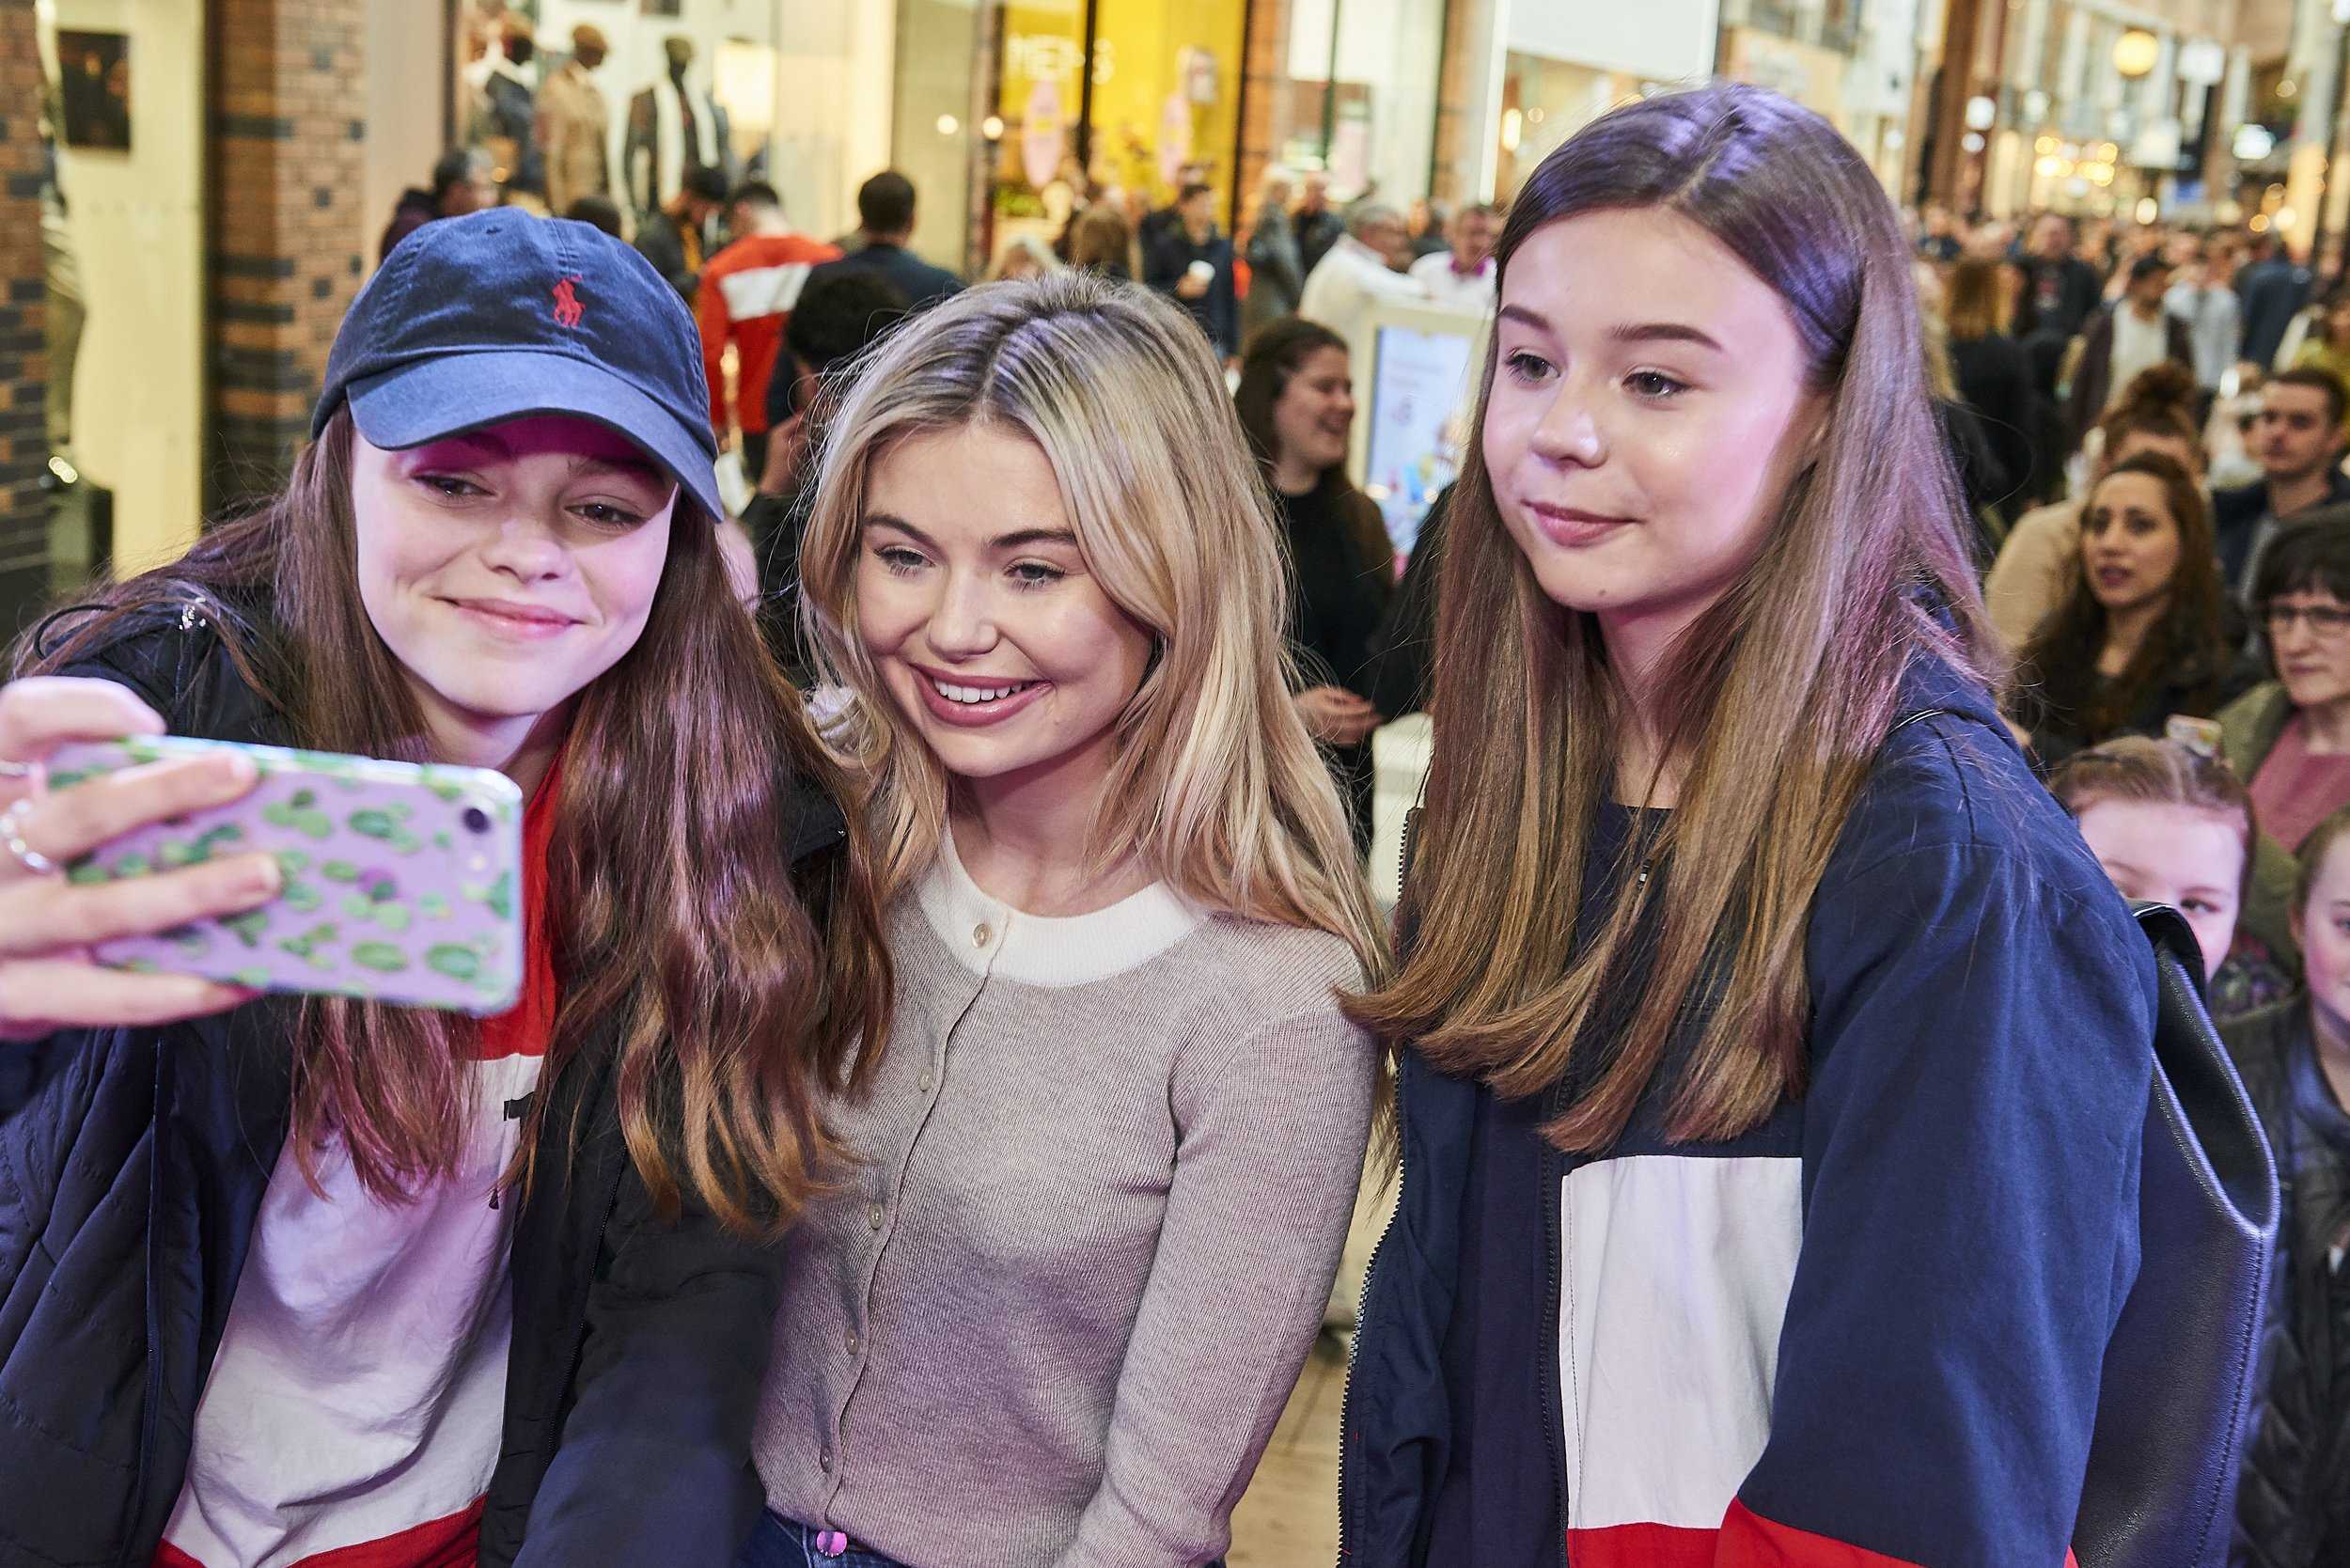 Toff takes a selfie or two with her fans at Touchwood, Solihull